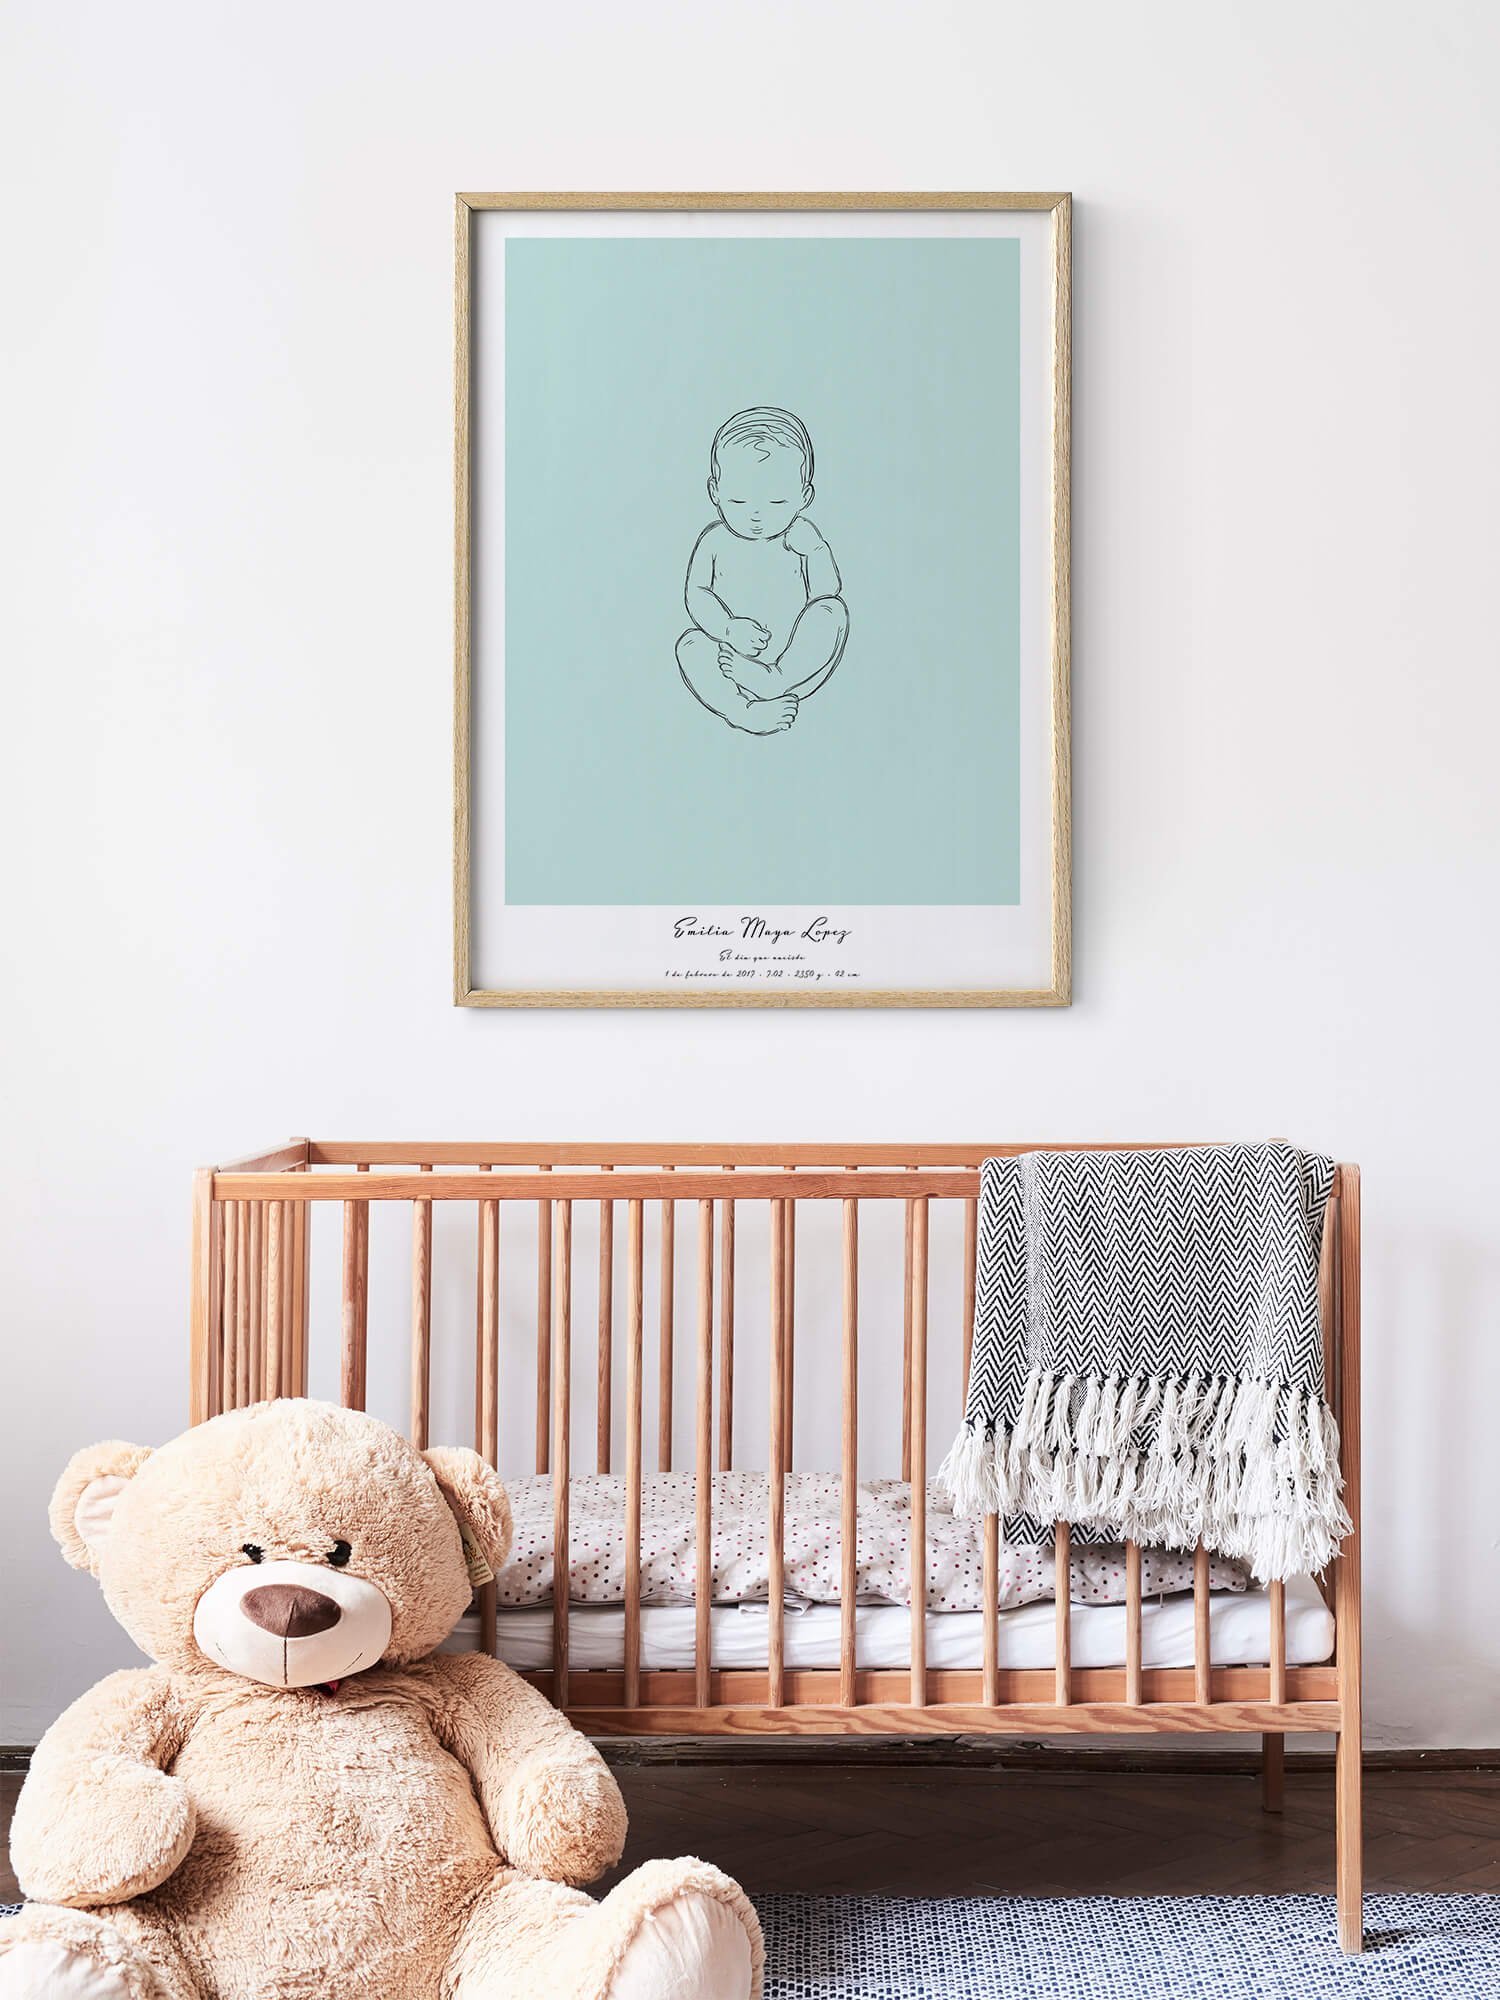 Birth_Poster_Personalized_Baby_Poster_Kids_Room_Name_Poster_positiveprints 01